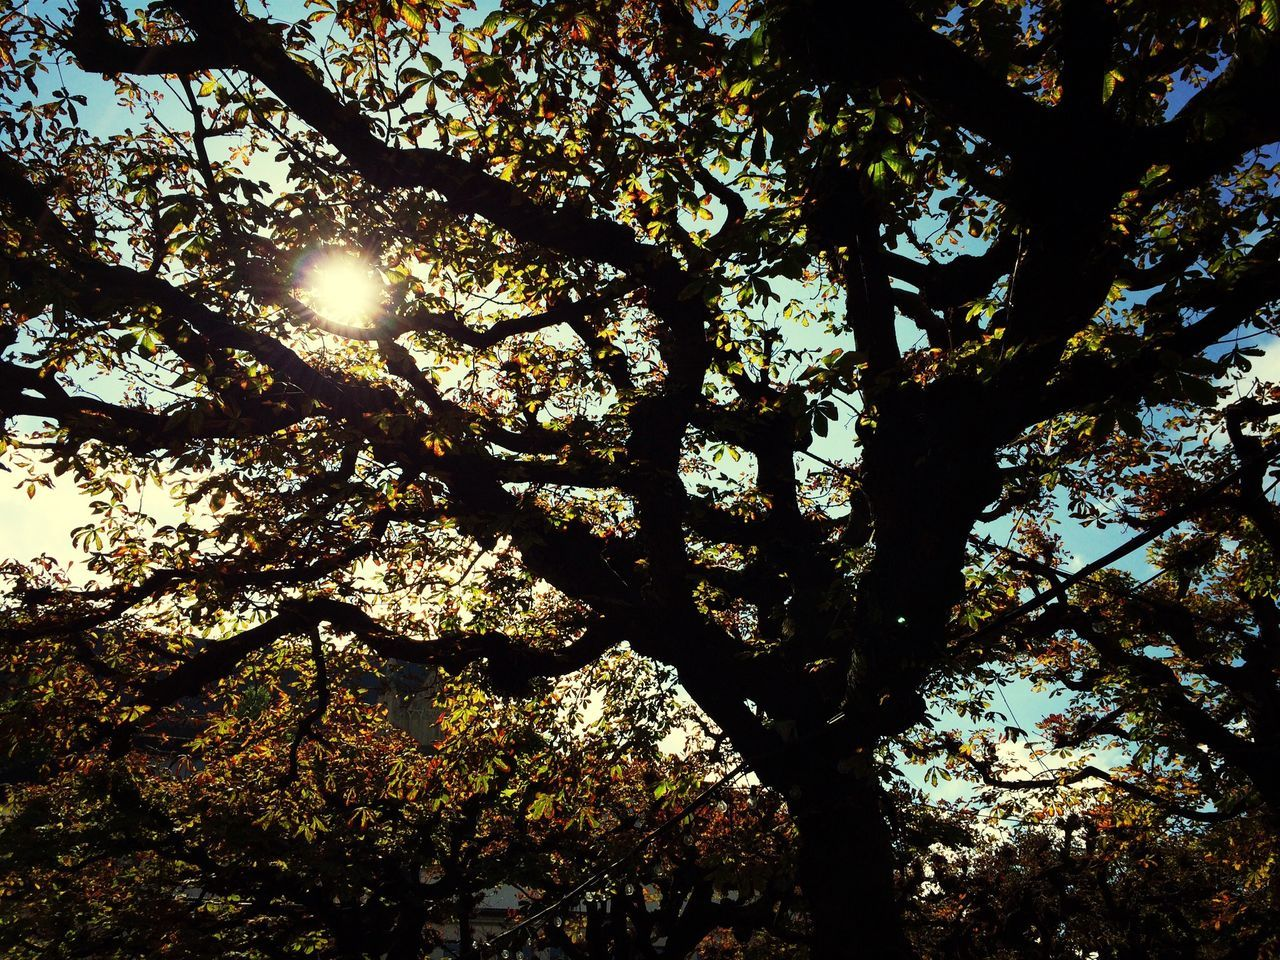 tree, nature, sunbeam, growth, sunlight, beauty in nature, sun, low angle view, branch, day, no people, outdoors, sunshine